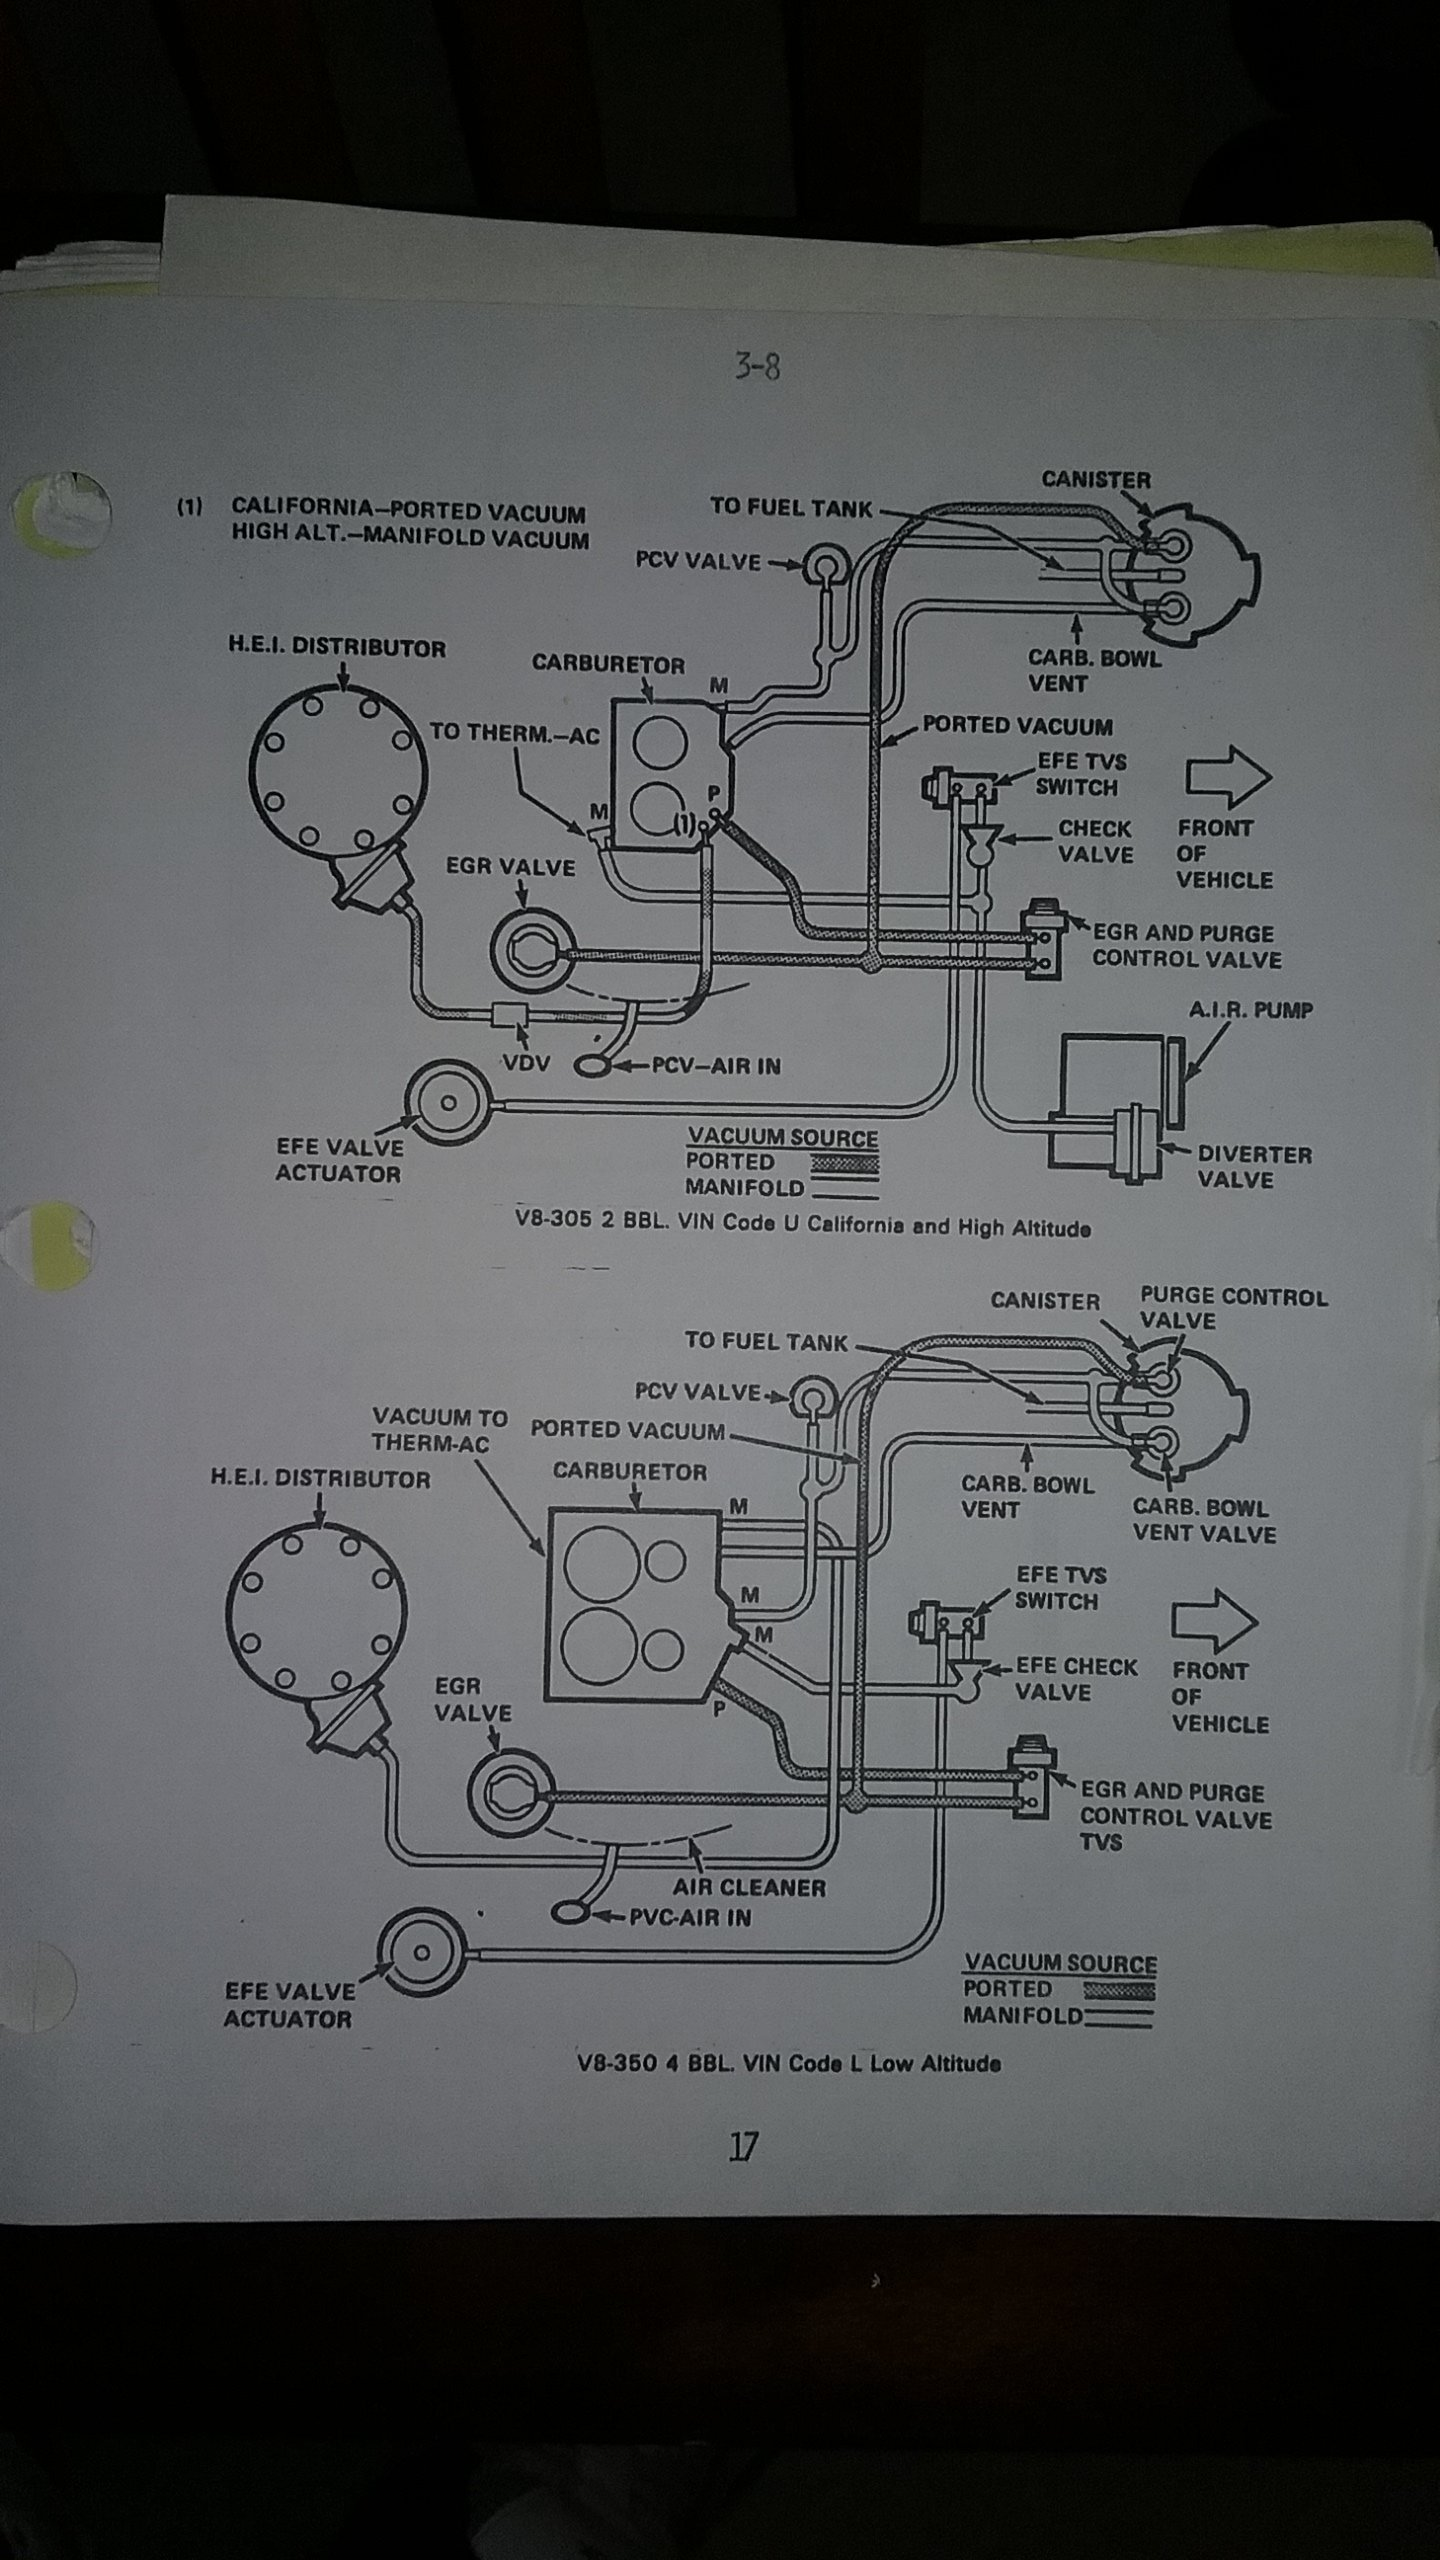 Engine Vacuum Diagram Gbodyforum 78 88 General Motors A G Body Community